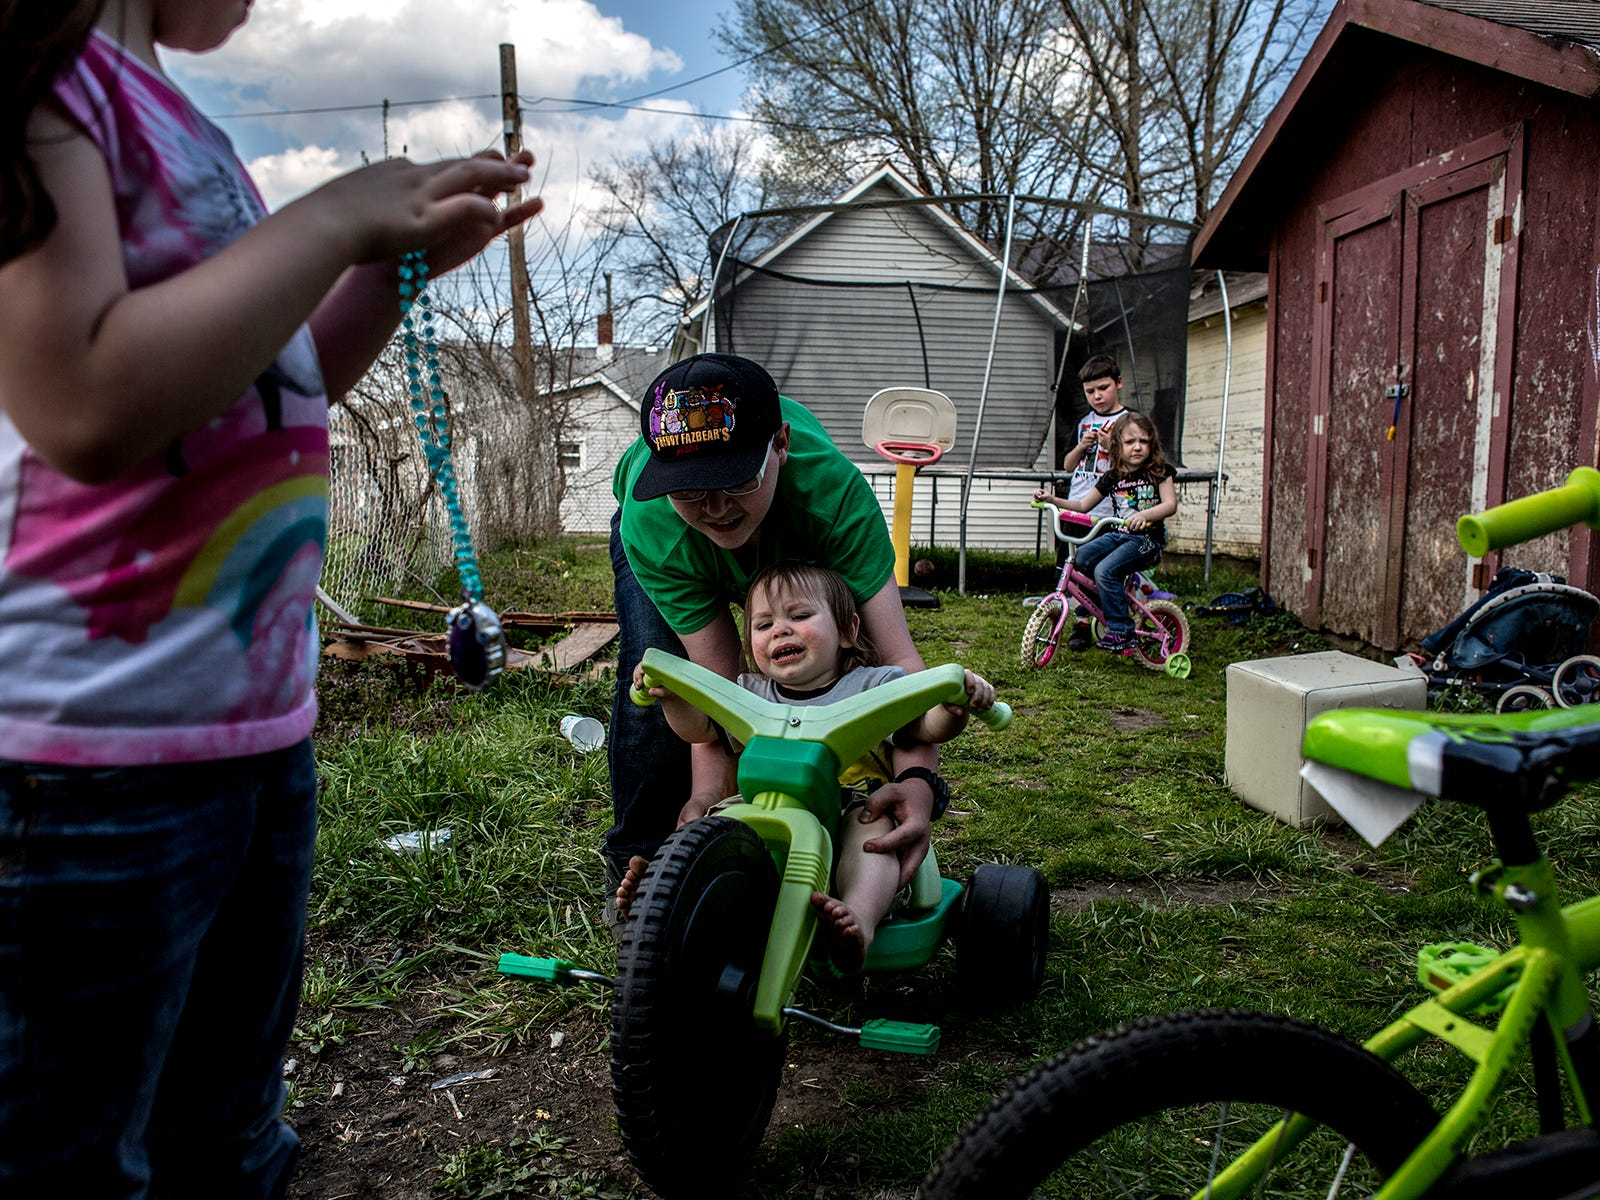 The Crawford children play in their backyard on a spring day as a storm begins to roll in.